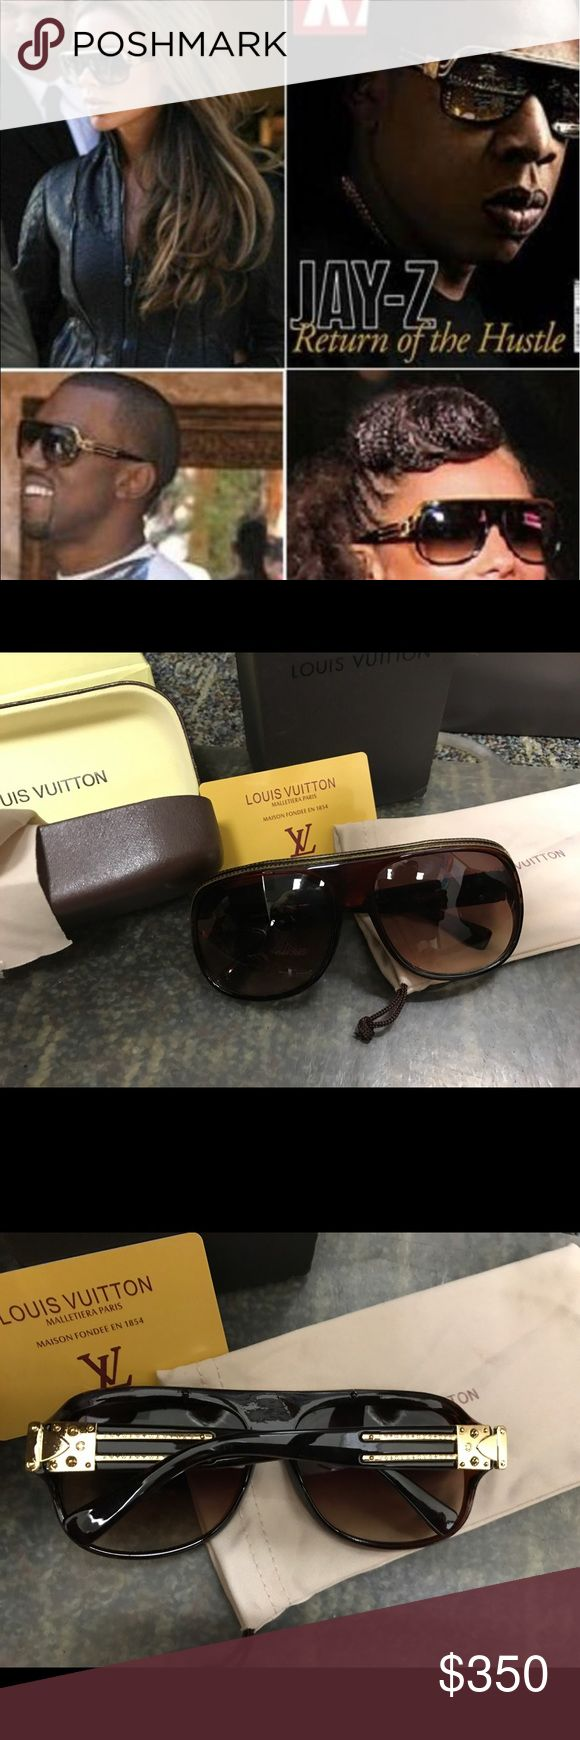 Louis Vuitton Millionaire sunglasses New comes with box, soft and hard case, cleaning cloth and authentication card. Don't ask obvious 😉 offers considered 🥂 Louis Vuitton Accessories Sunglasses